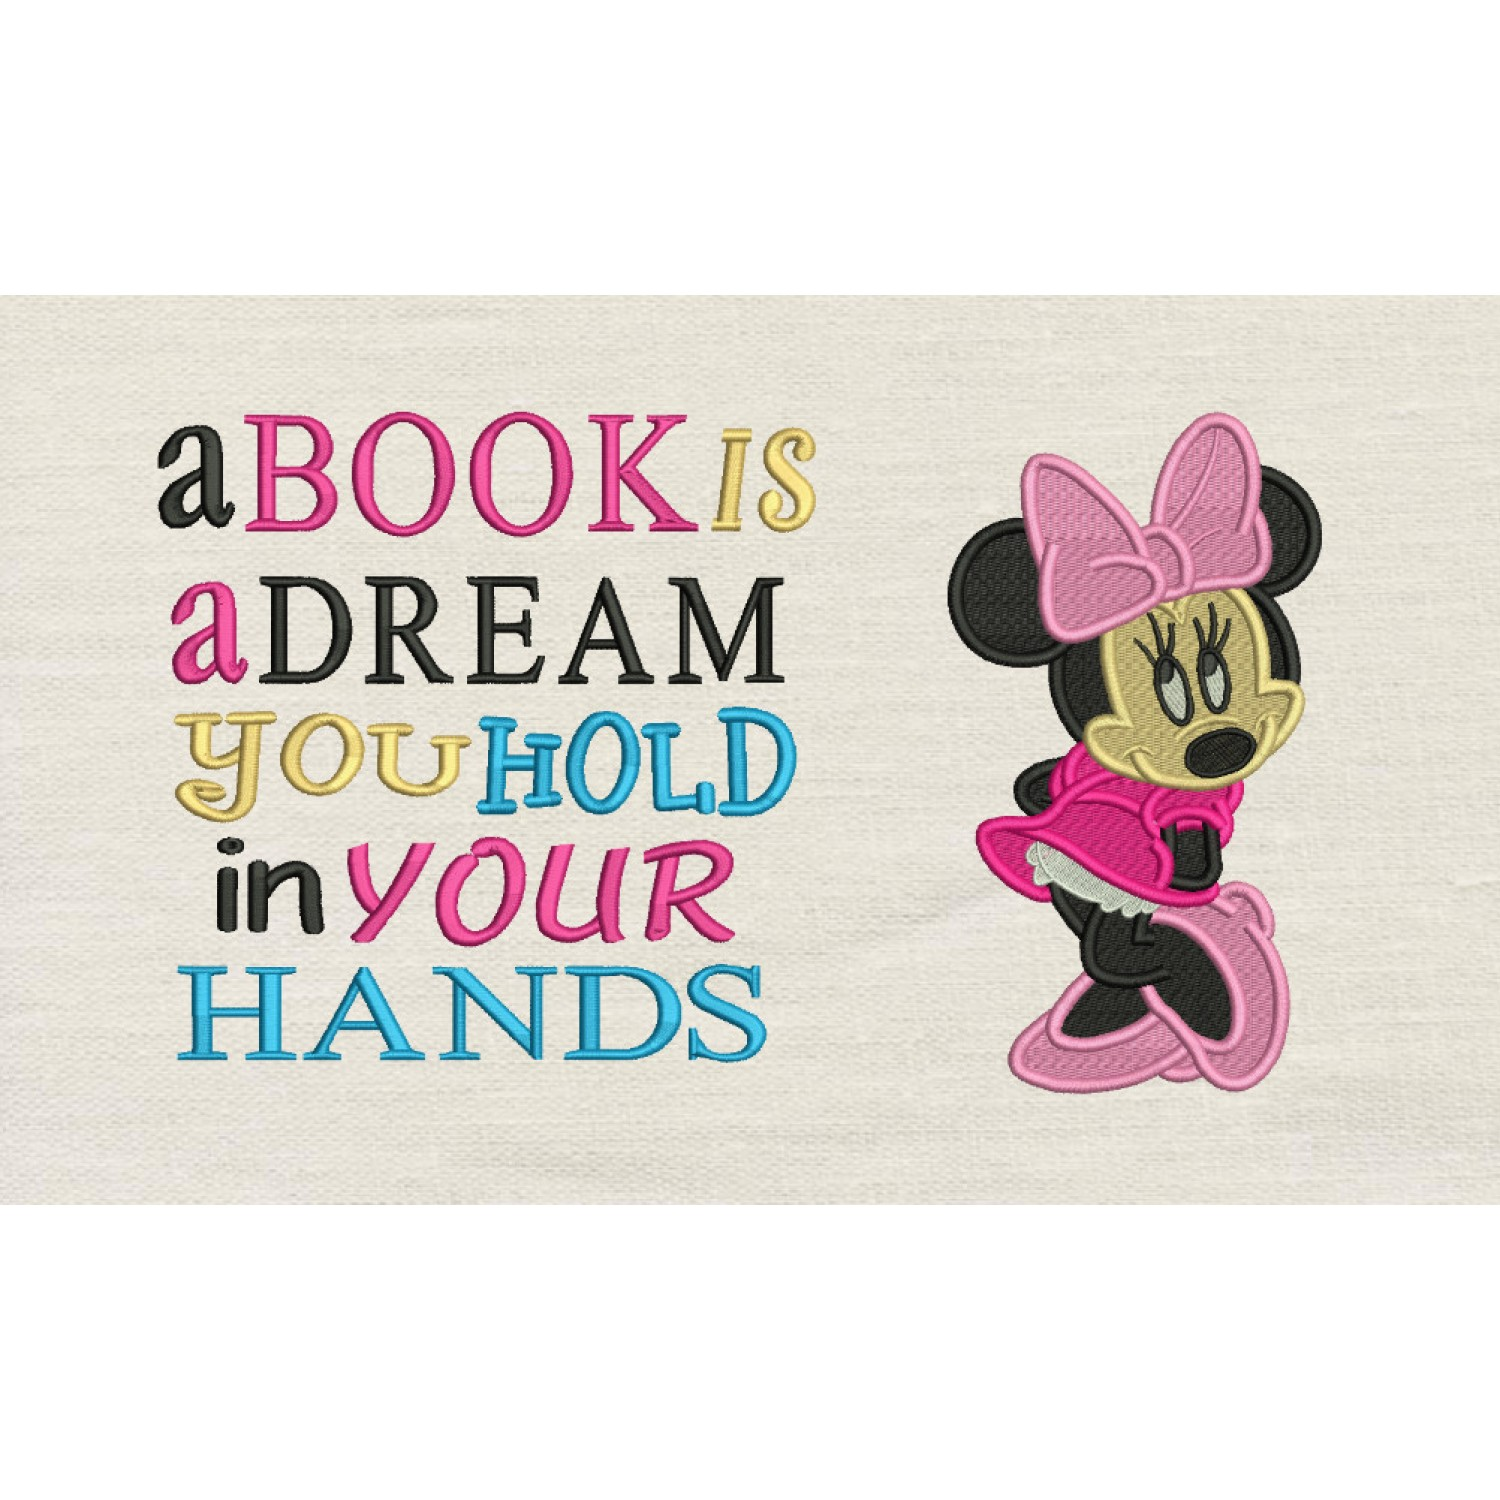 Minnie mouse embroidery a book is a deram